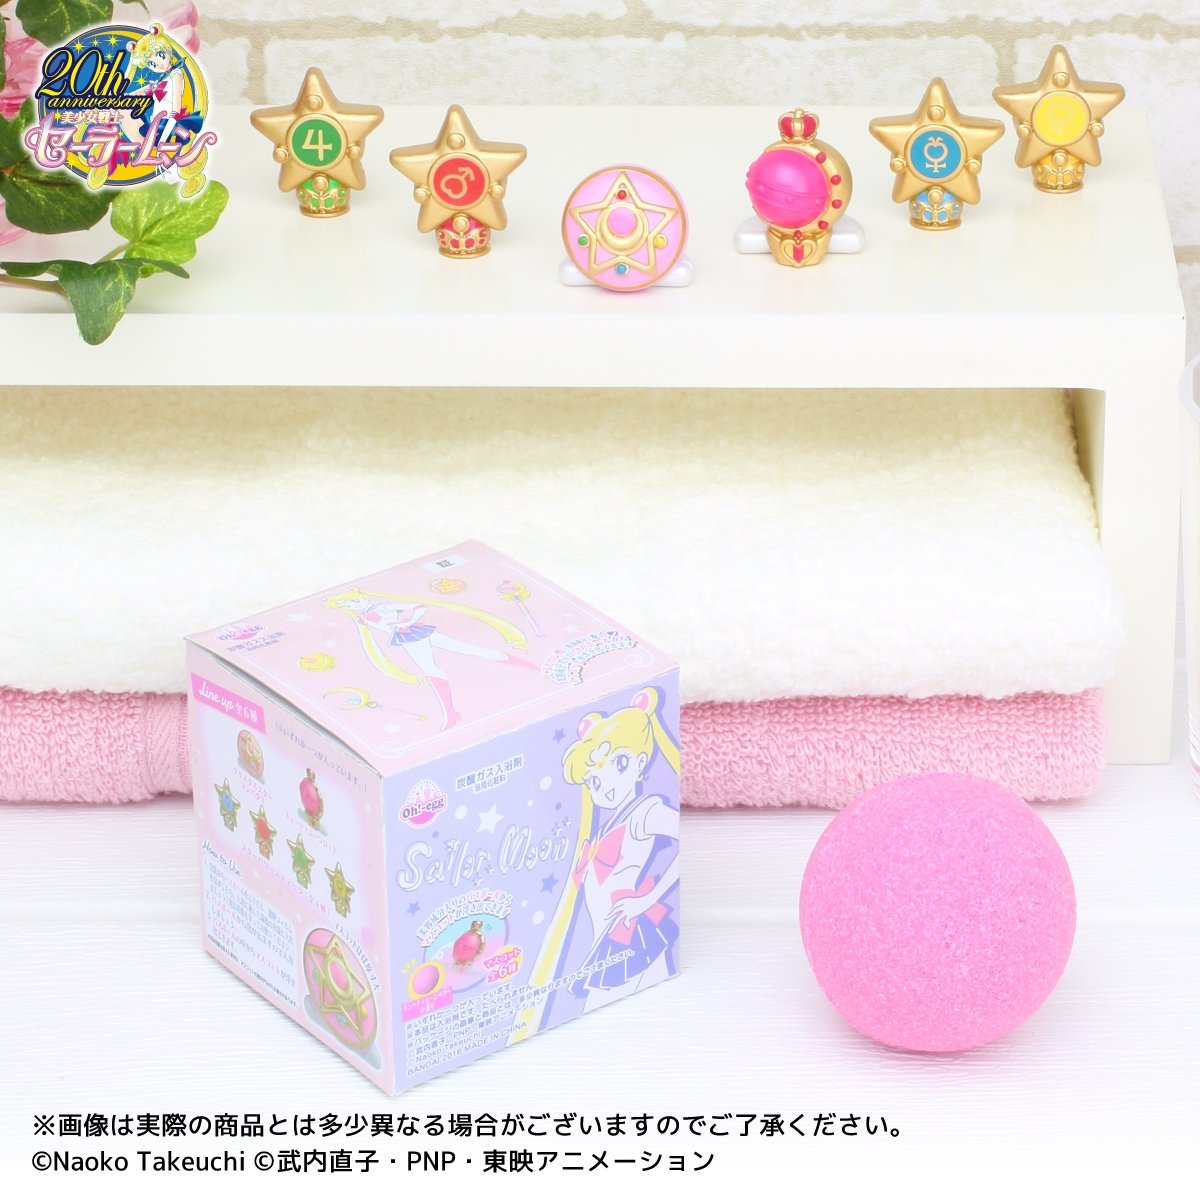 Oh Egg Sailor Moon Bath Ball With Toy Mascot